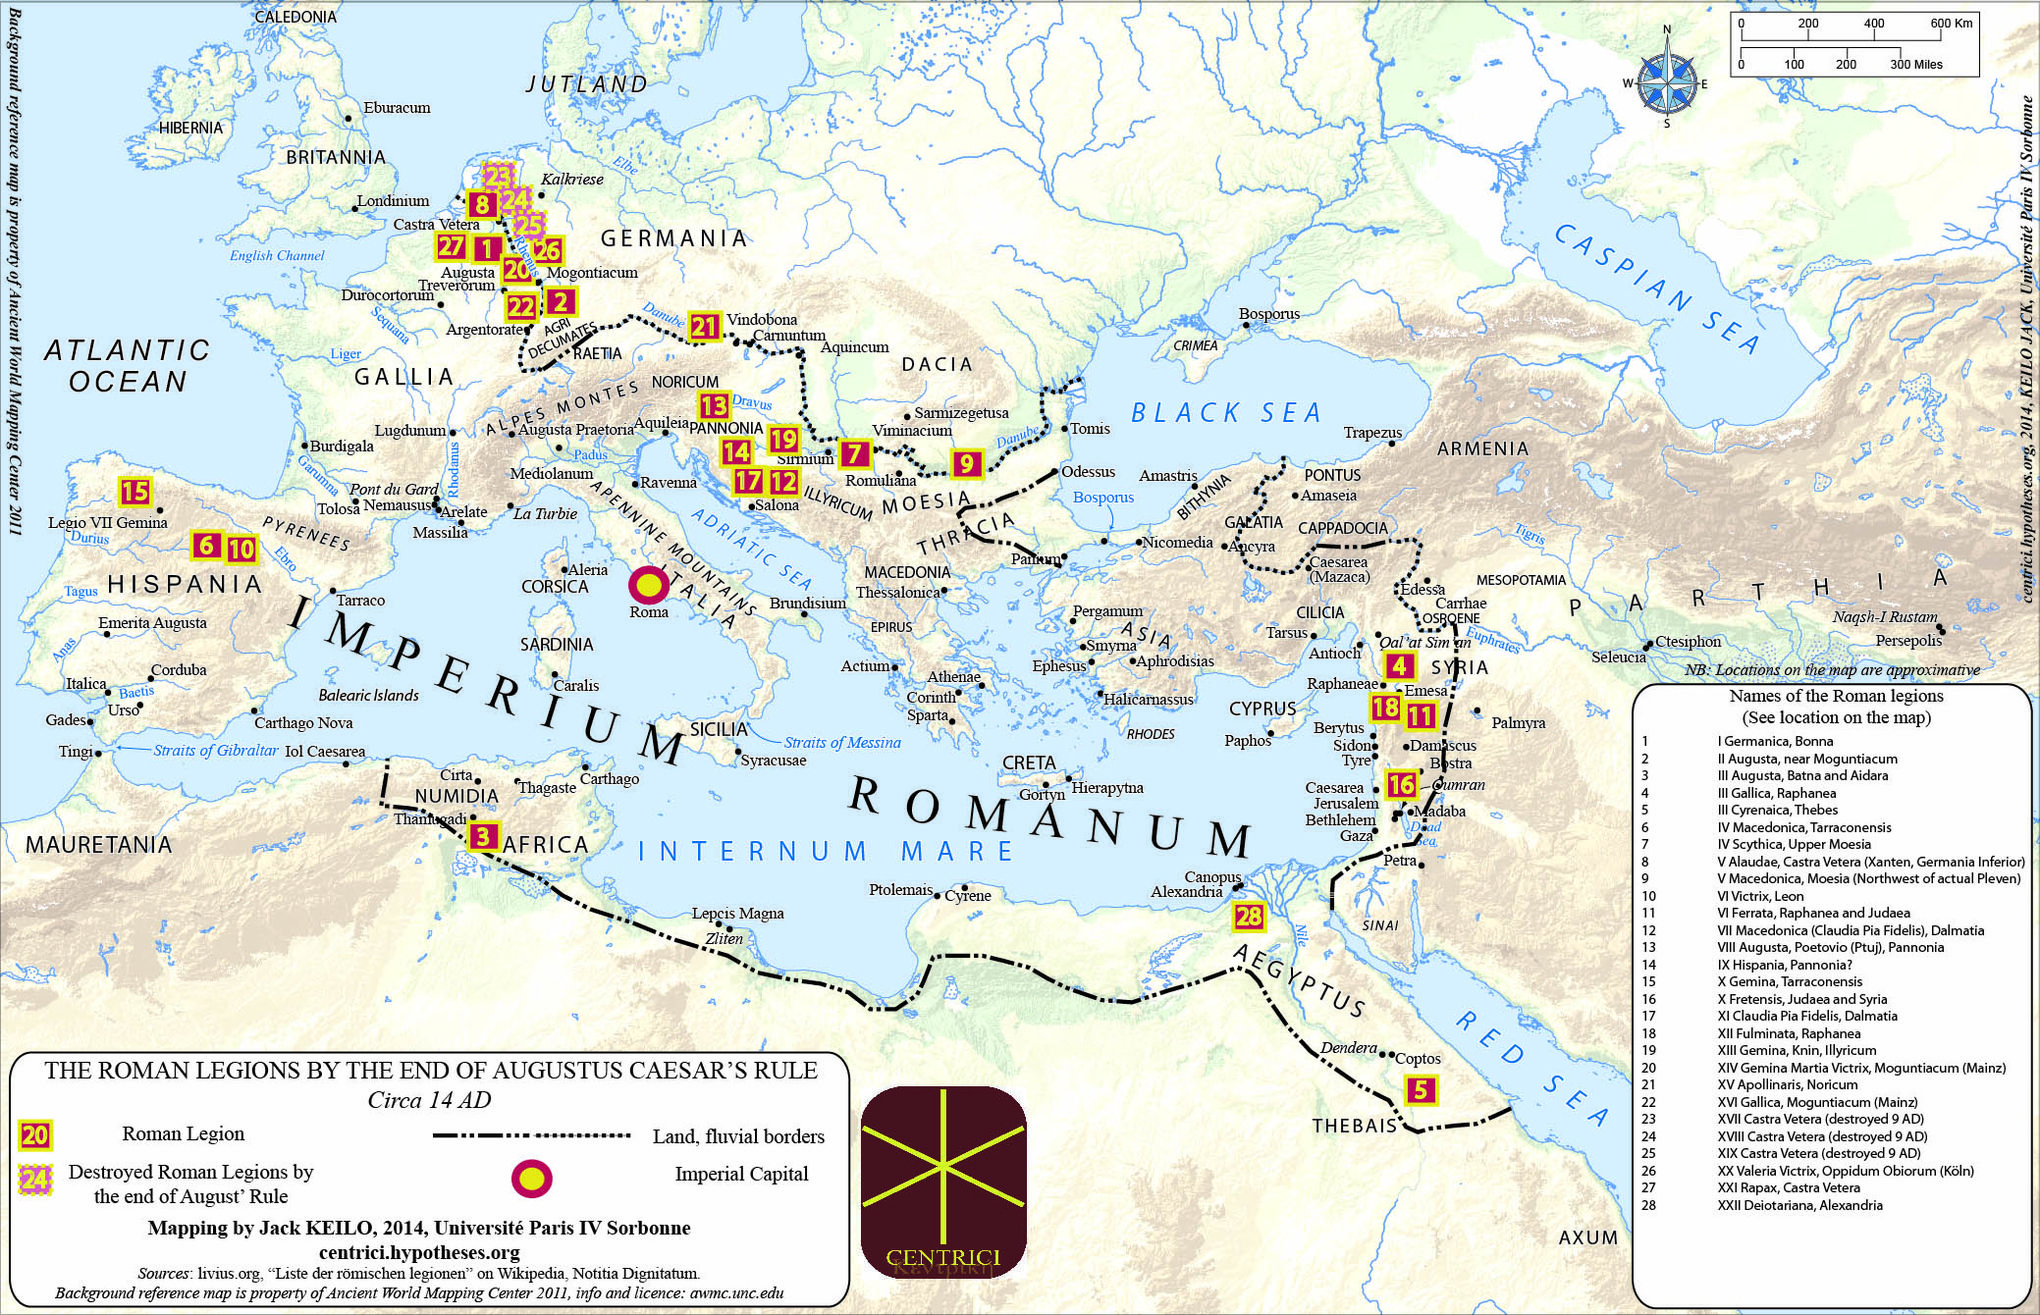 facts about the most powerful governing body in the mediterranean the roman empire